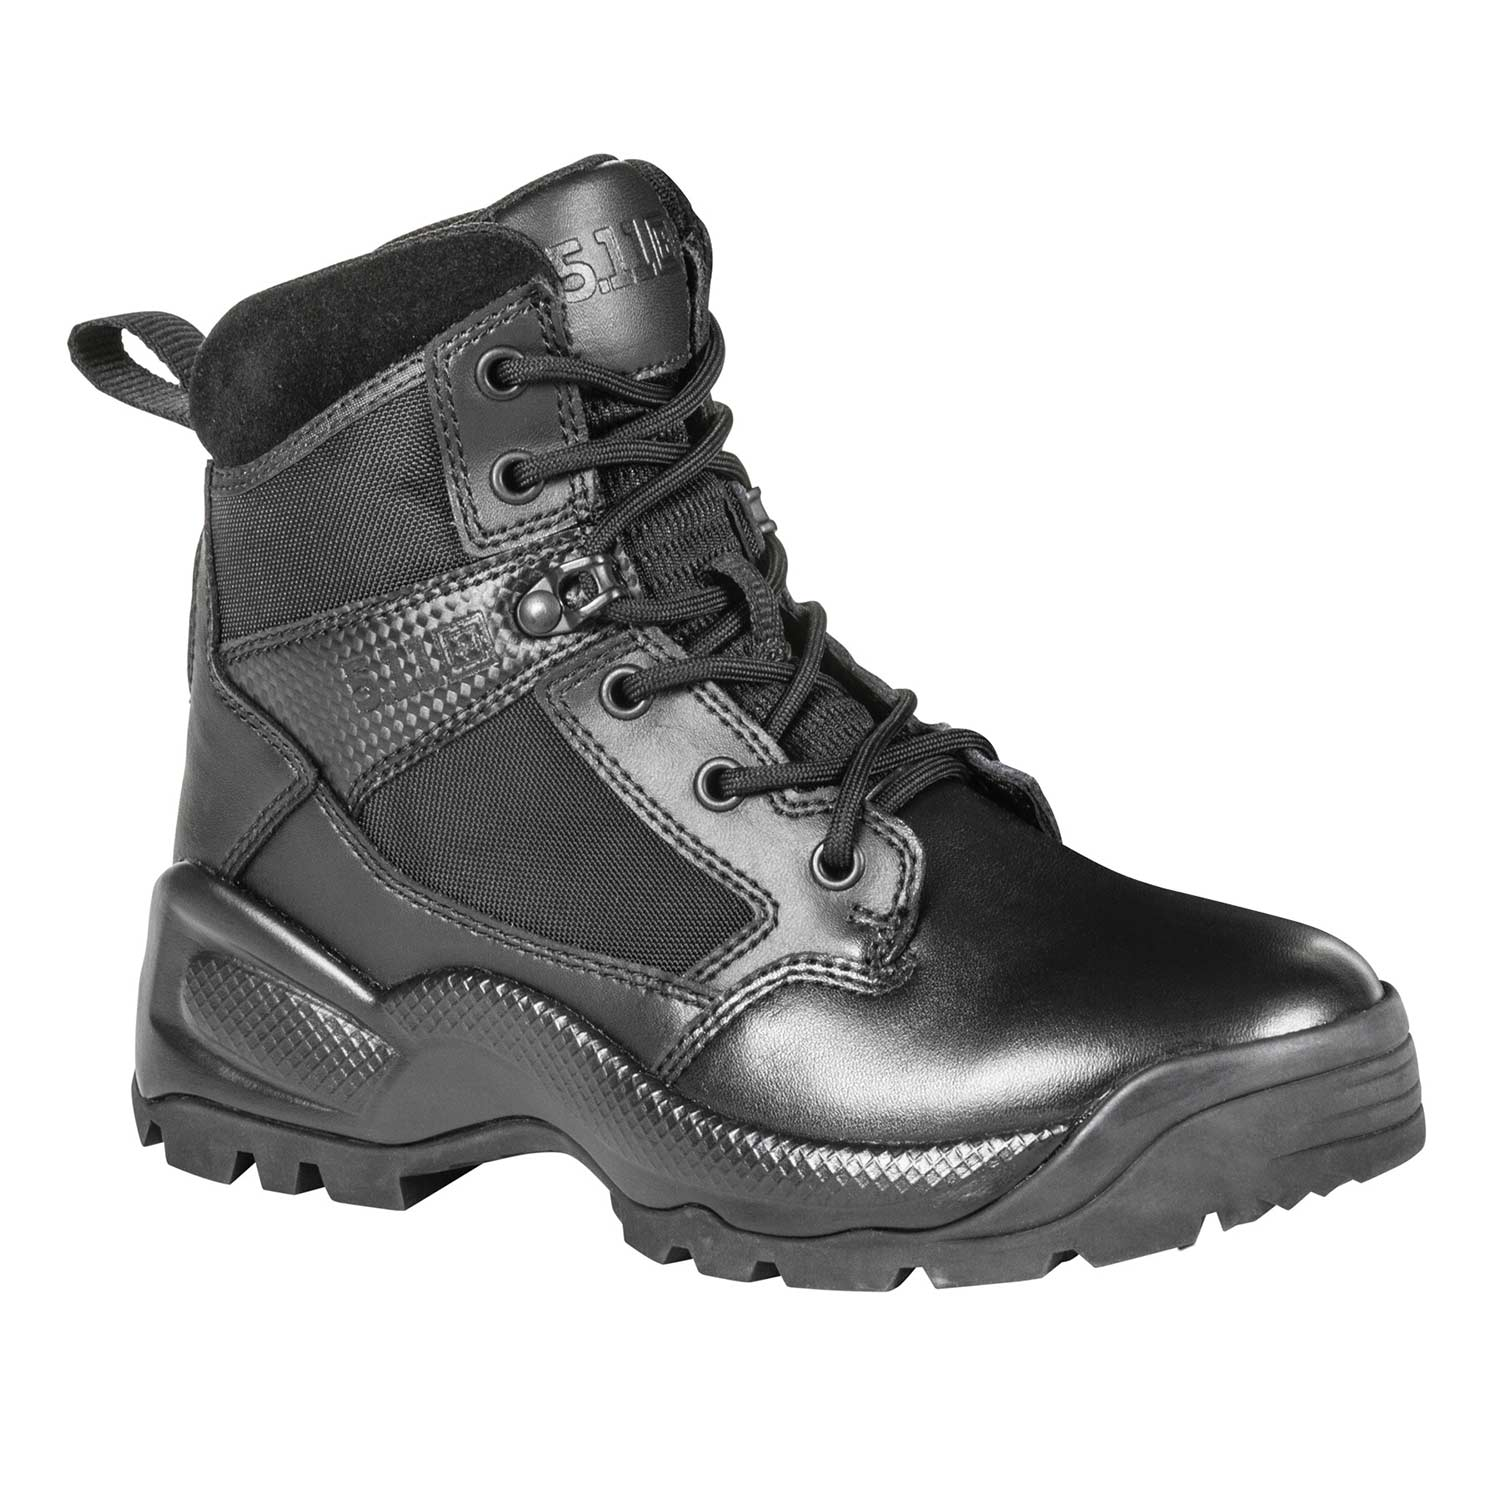 5.11 Tactical Women's A.T.A.C. 2.0 6 inch Zip Quarter Boot